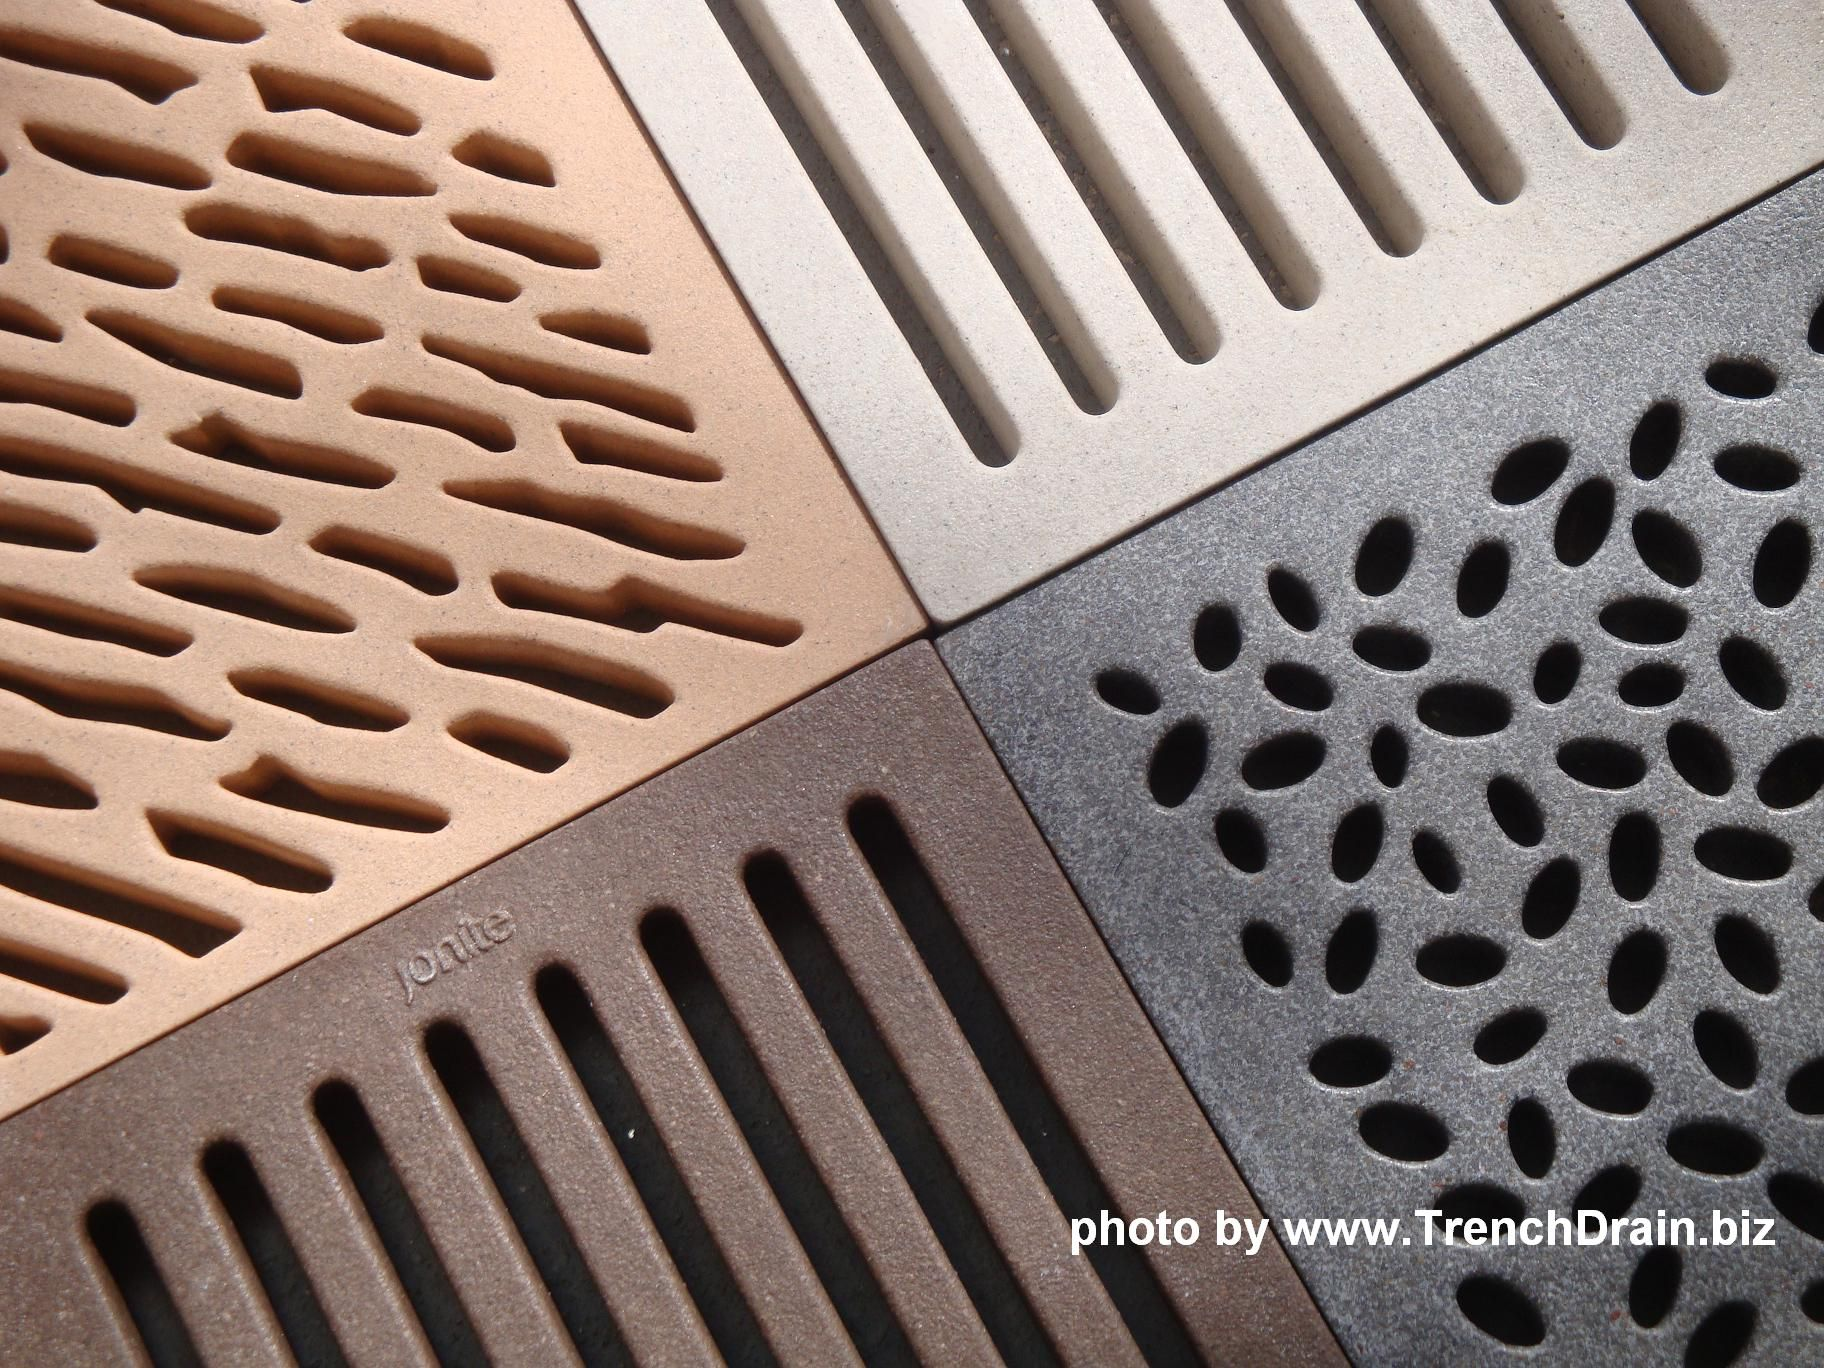 Decorative Plastic Trench Drain Protzman Residence